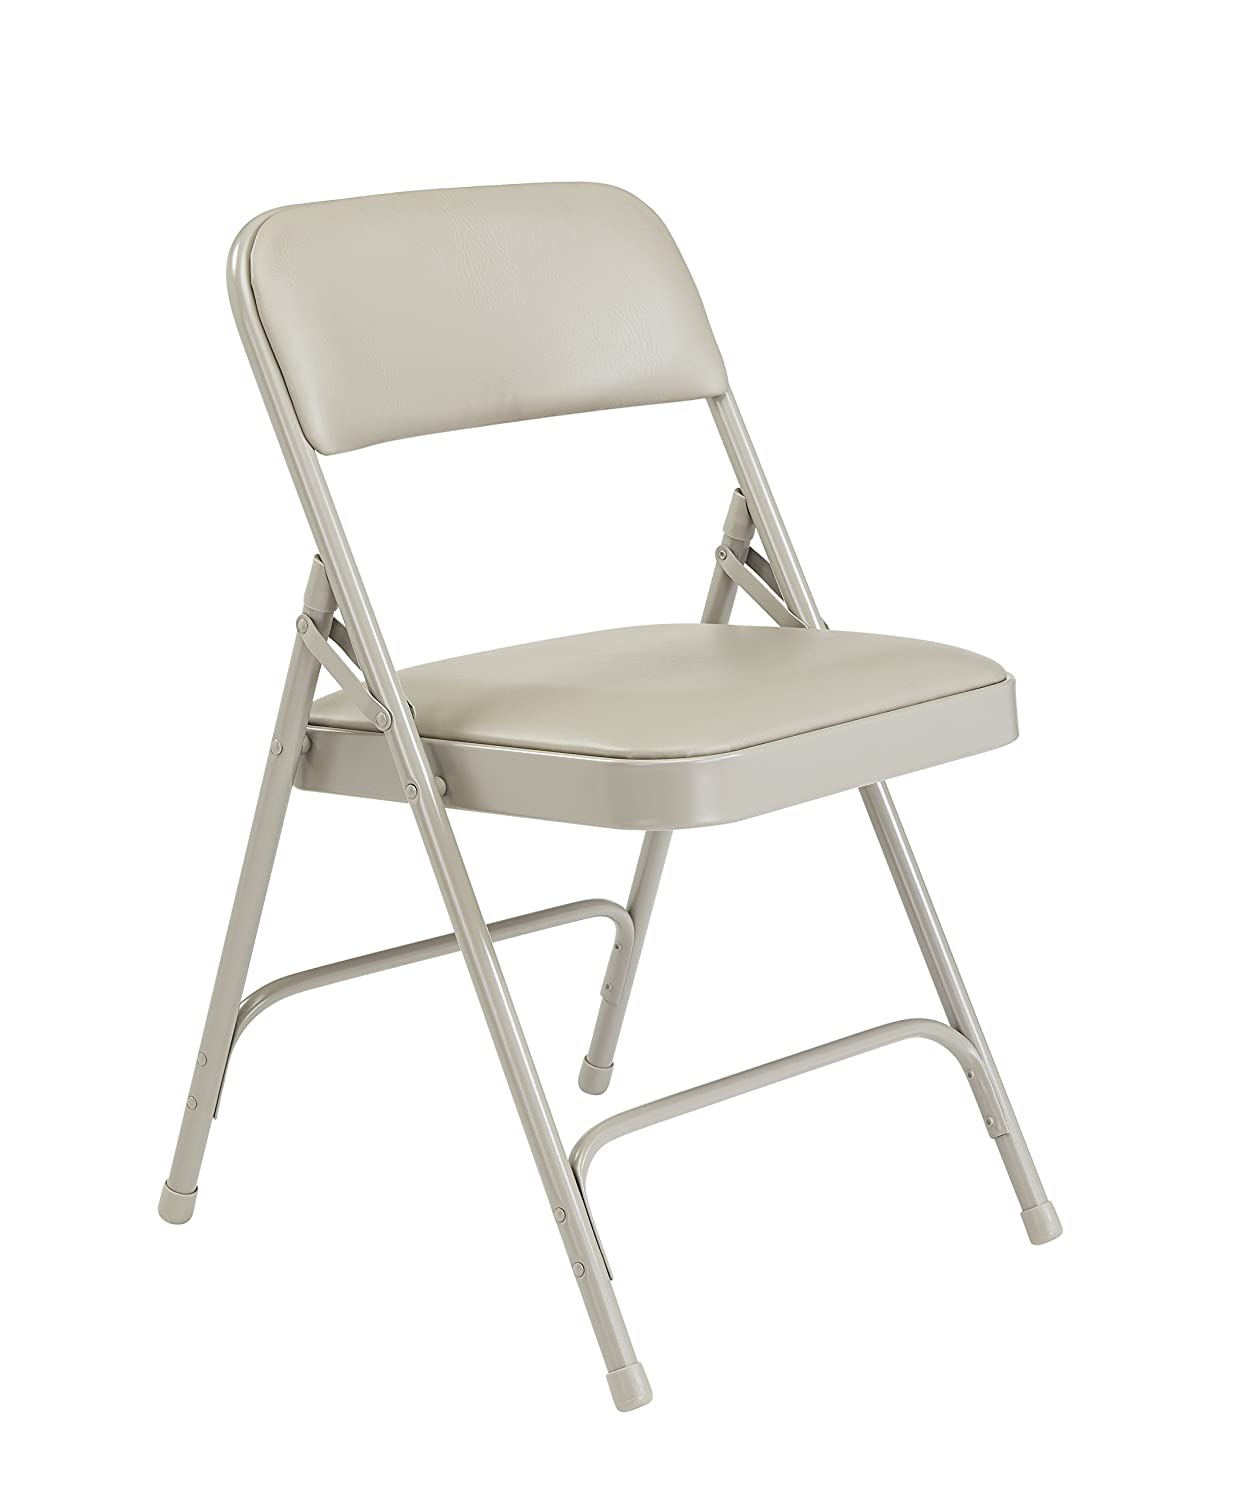 National Public Seating 1200 Series Steel Frame Upholstered Premium Vinyl Seat and Back Folding Chair with Double Brace, 480 lbs Capacity, Warm Gray/Gray (Carton of 4) 1202